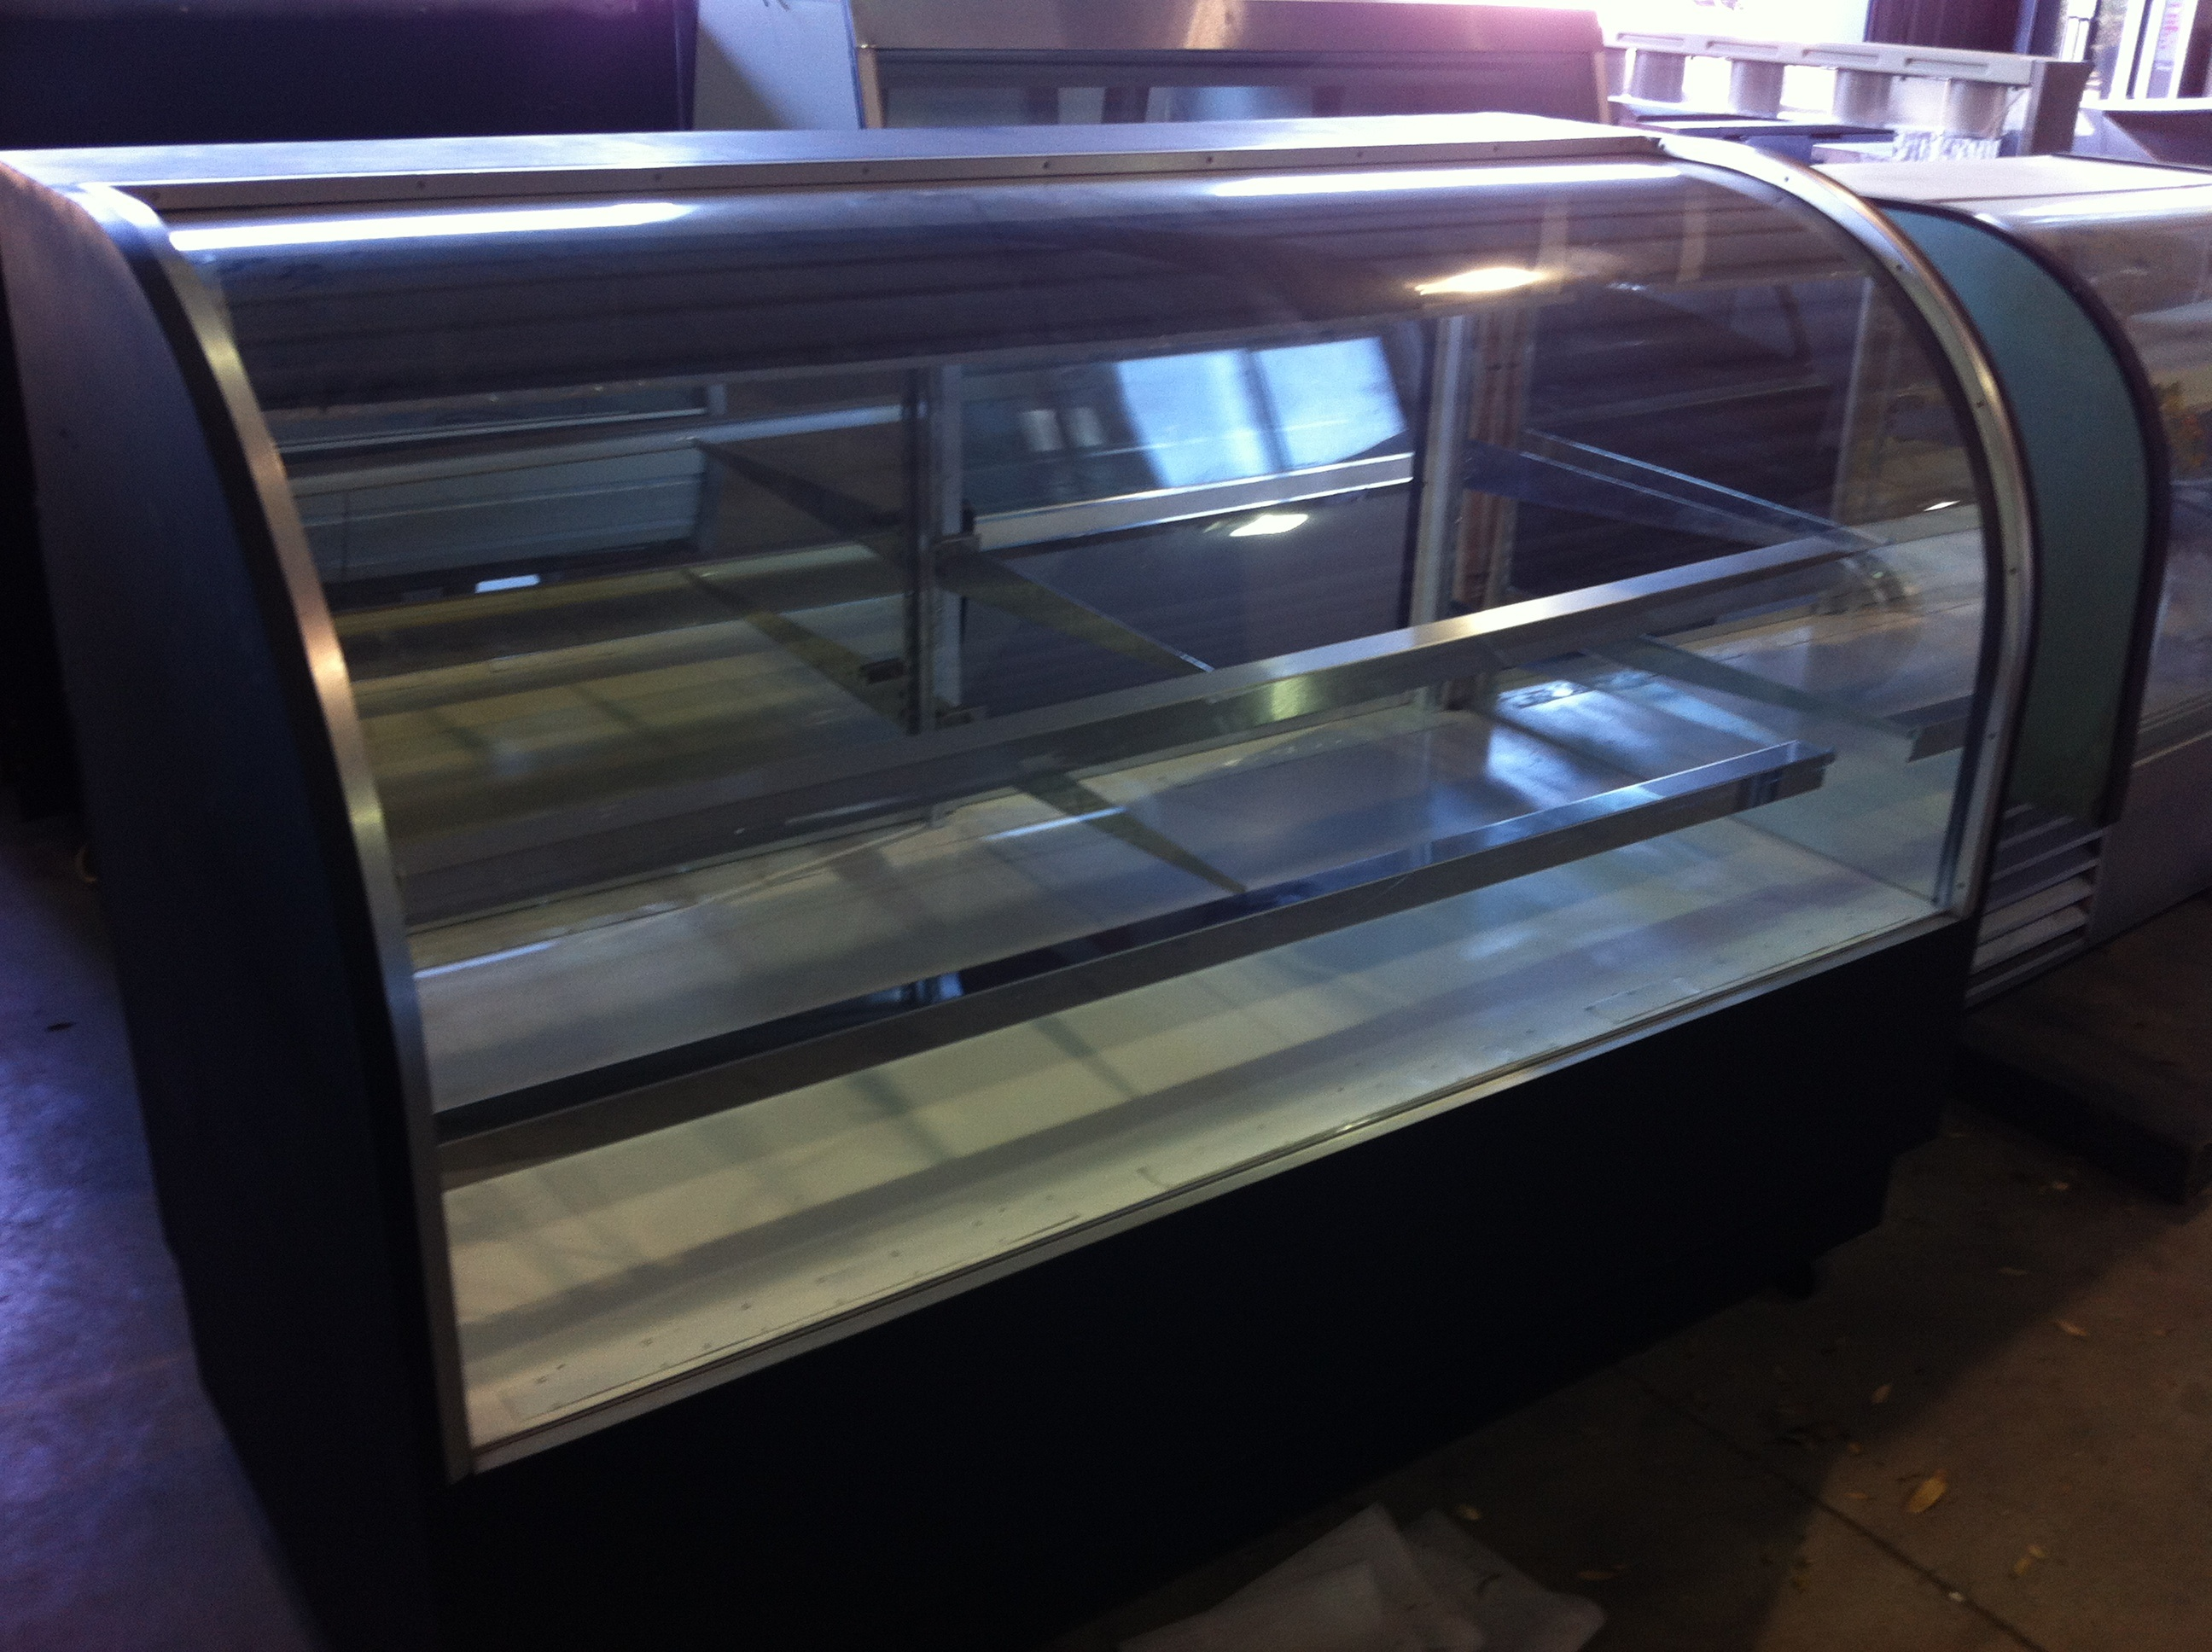 Used Food Truck For Sale >> Bakery and Deli Display Case Blowout Sale – One Fat Frog